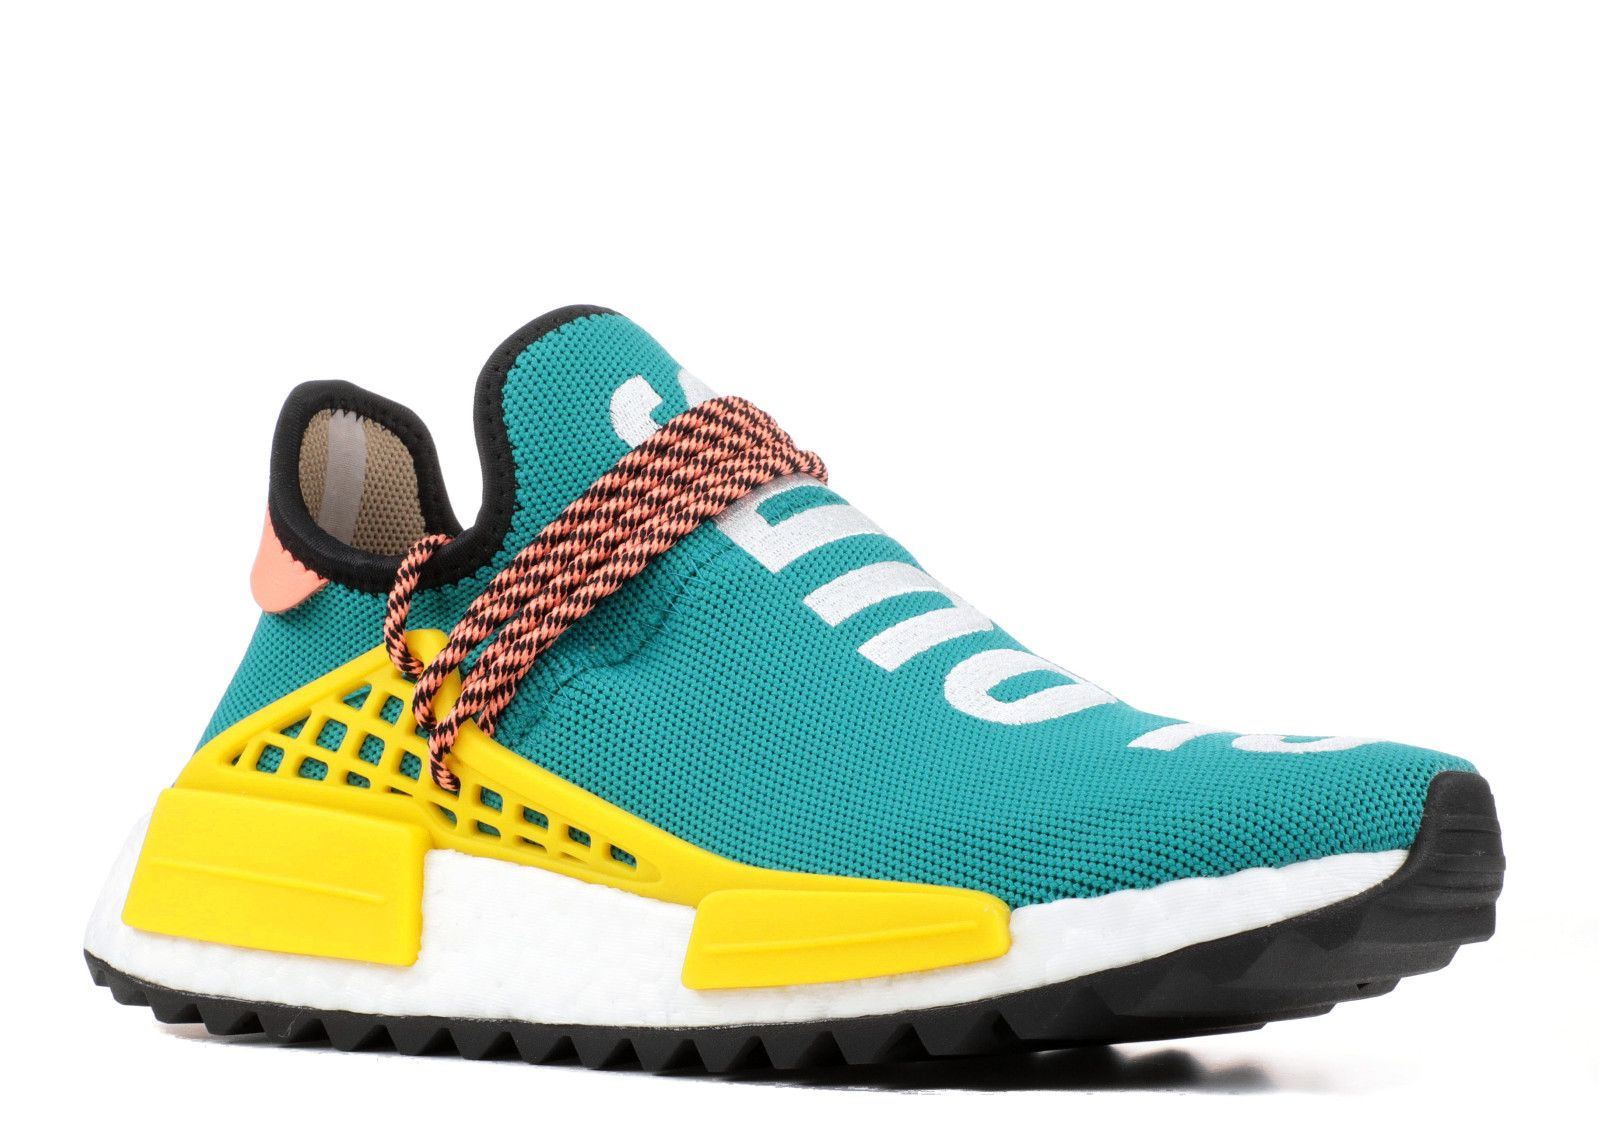 competitive price 208b7 8e290 Pw human race nmd tr